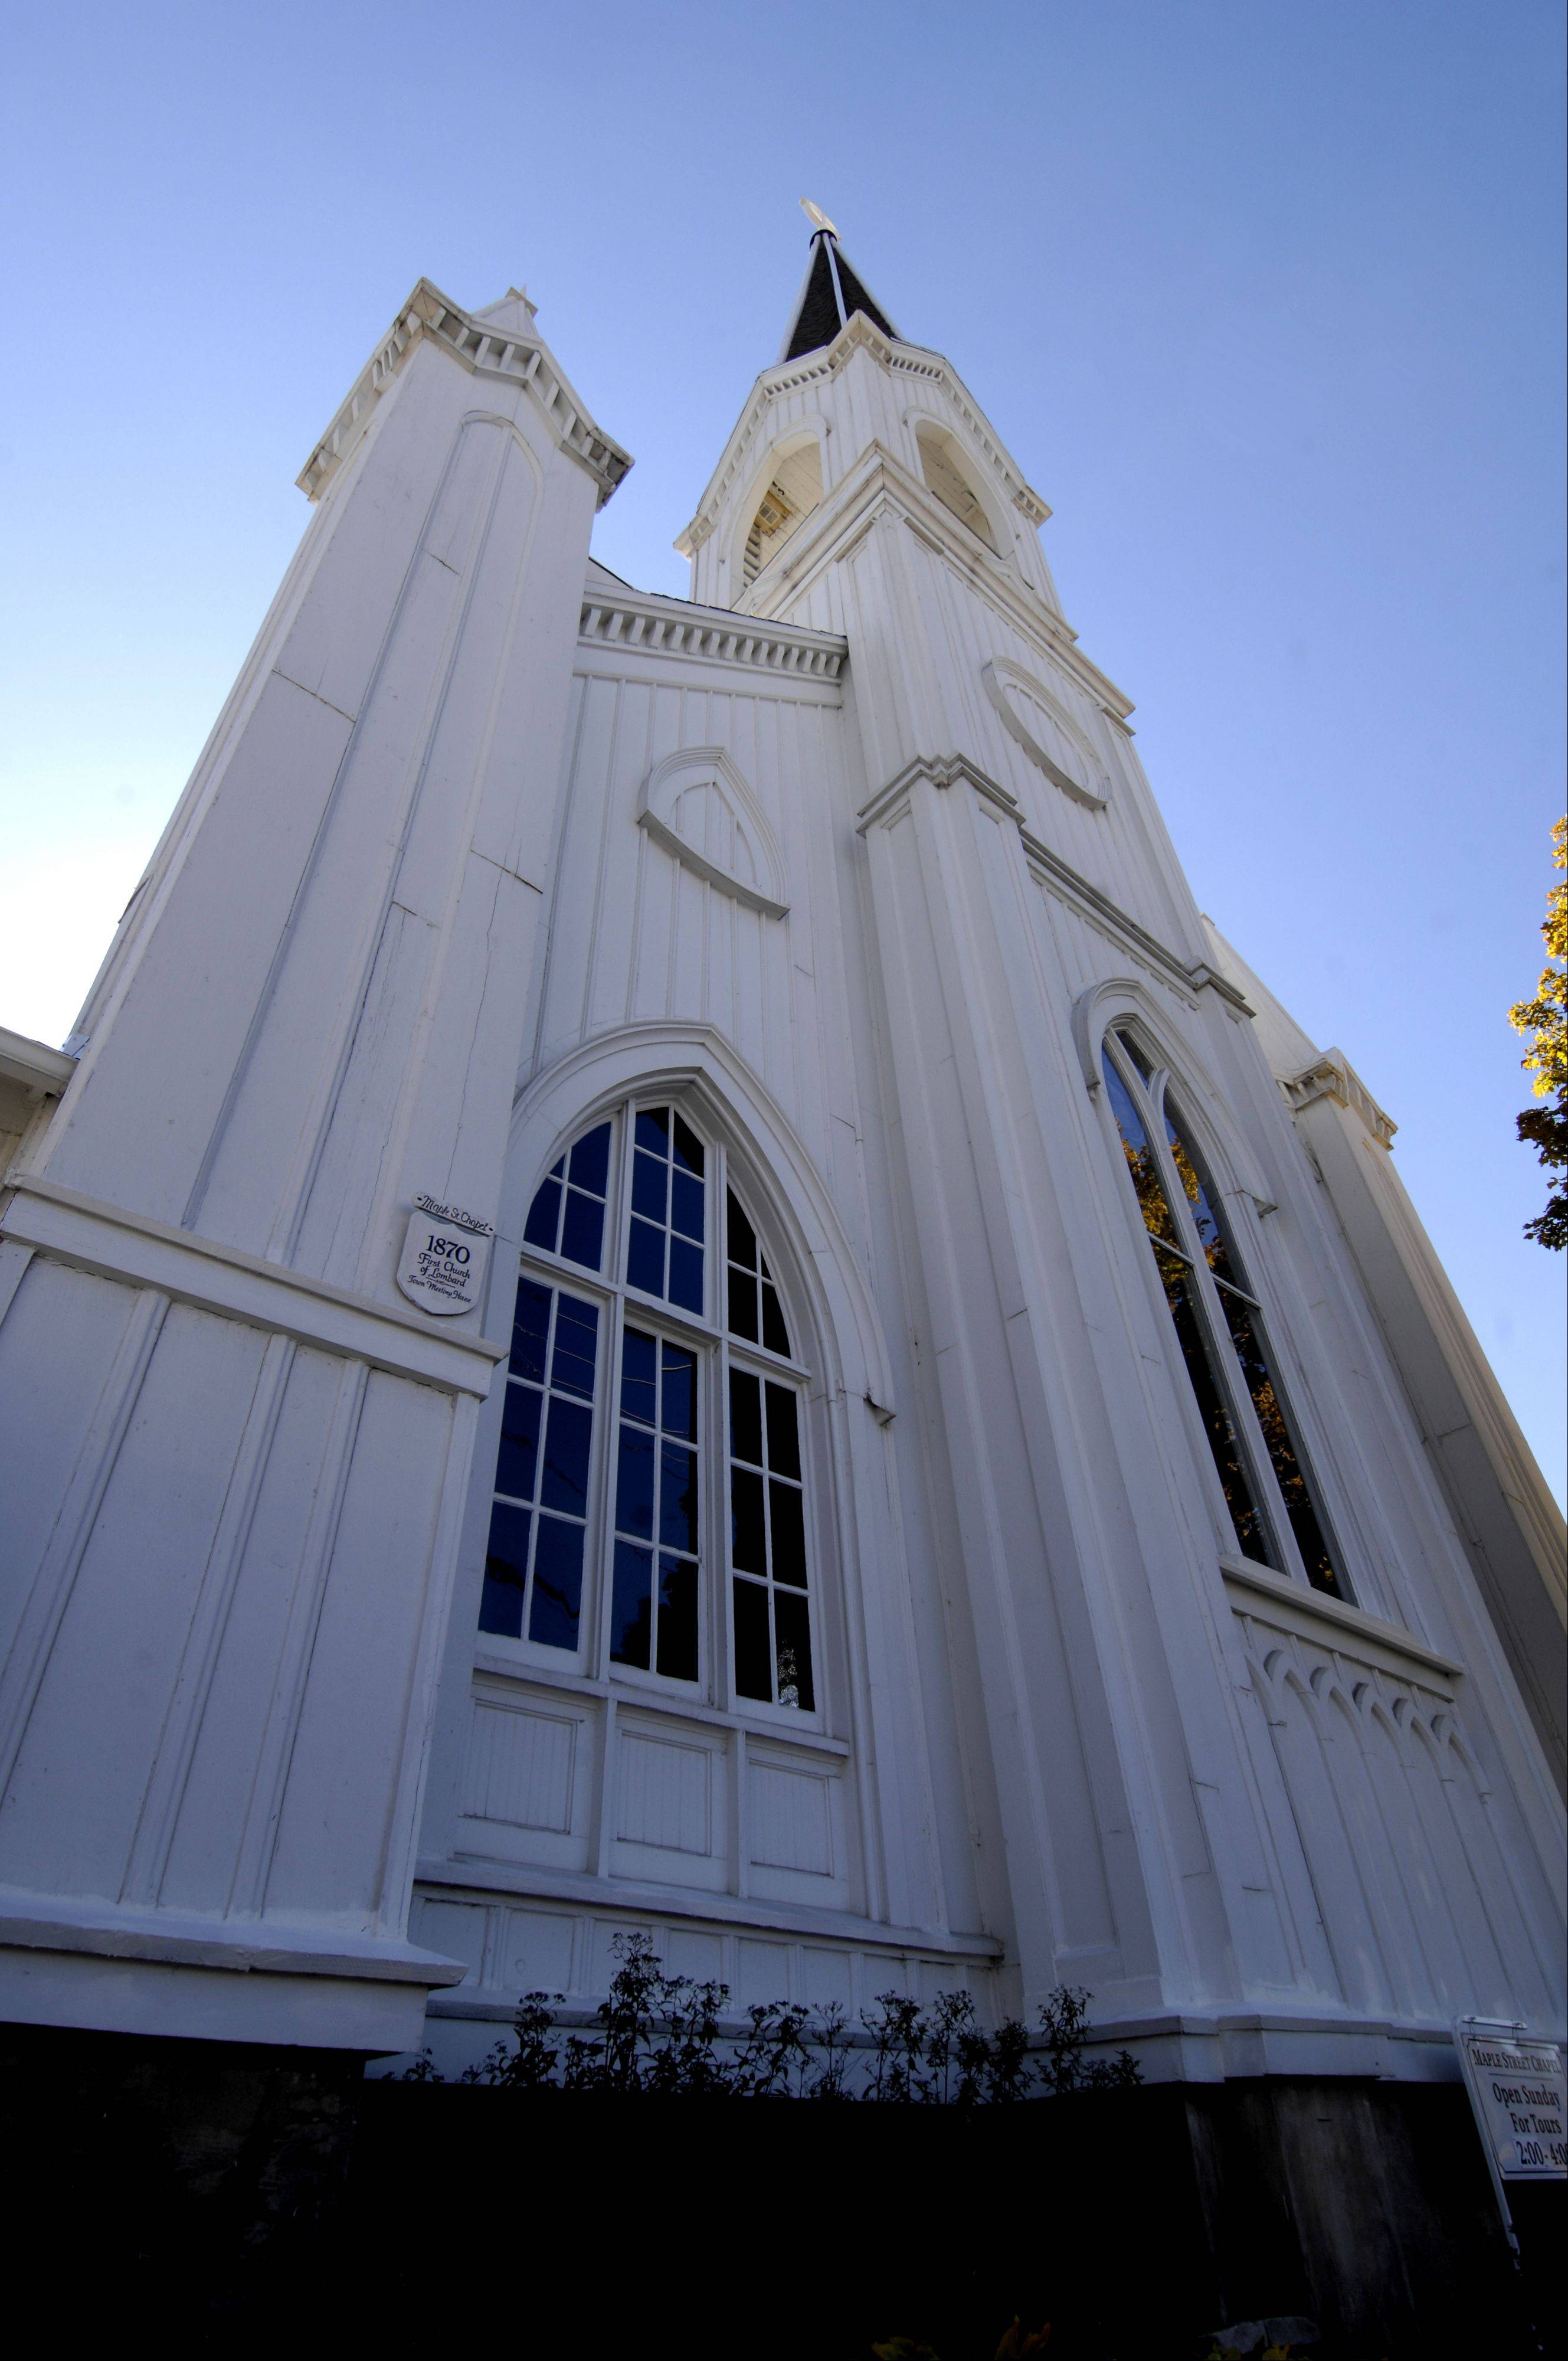 The Maple Street Chapel Preservation Society uses the annual variety series as a fundraiser to support efforts to preserve the historic Lombard church. The series begins Saturday, Feb. 23.